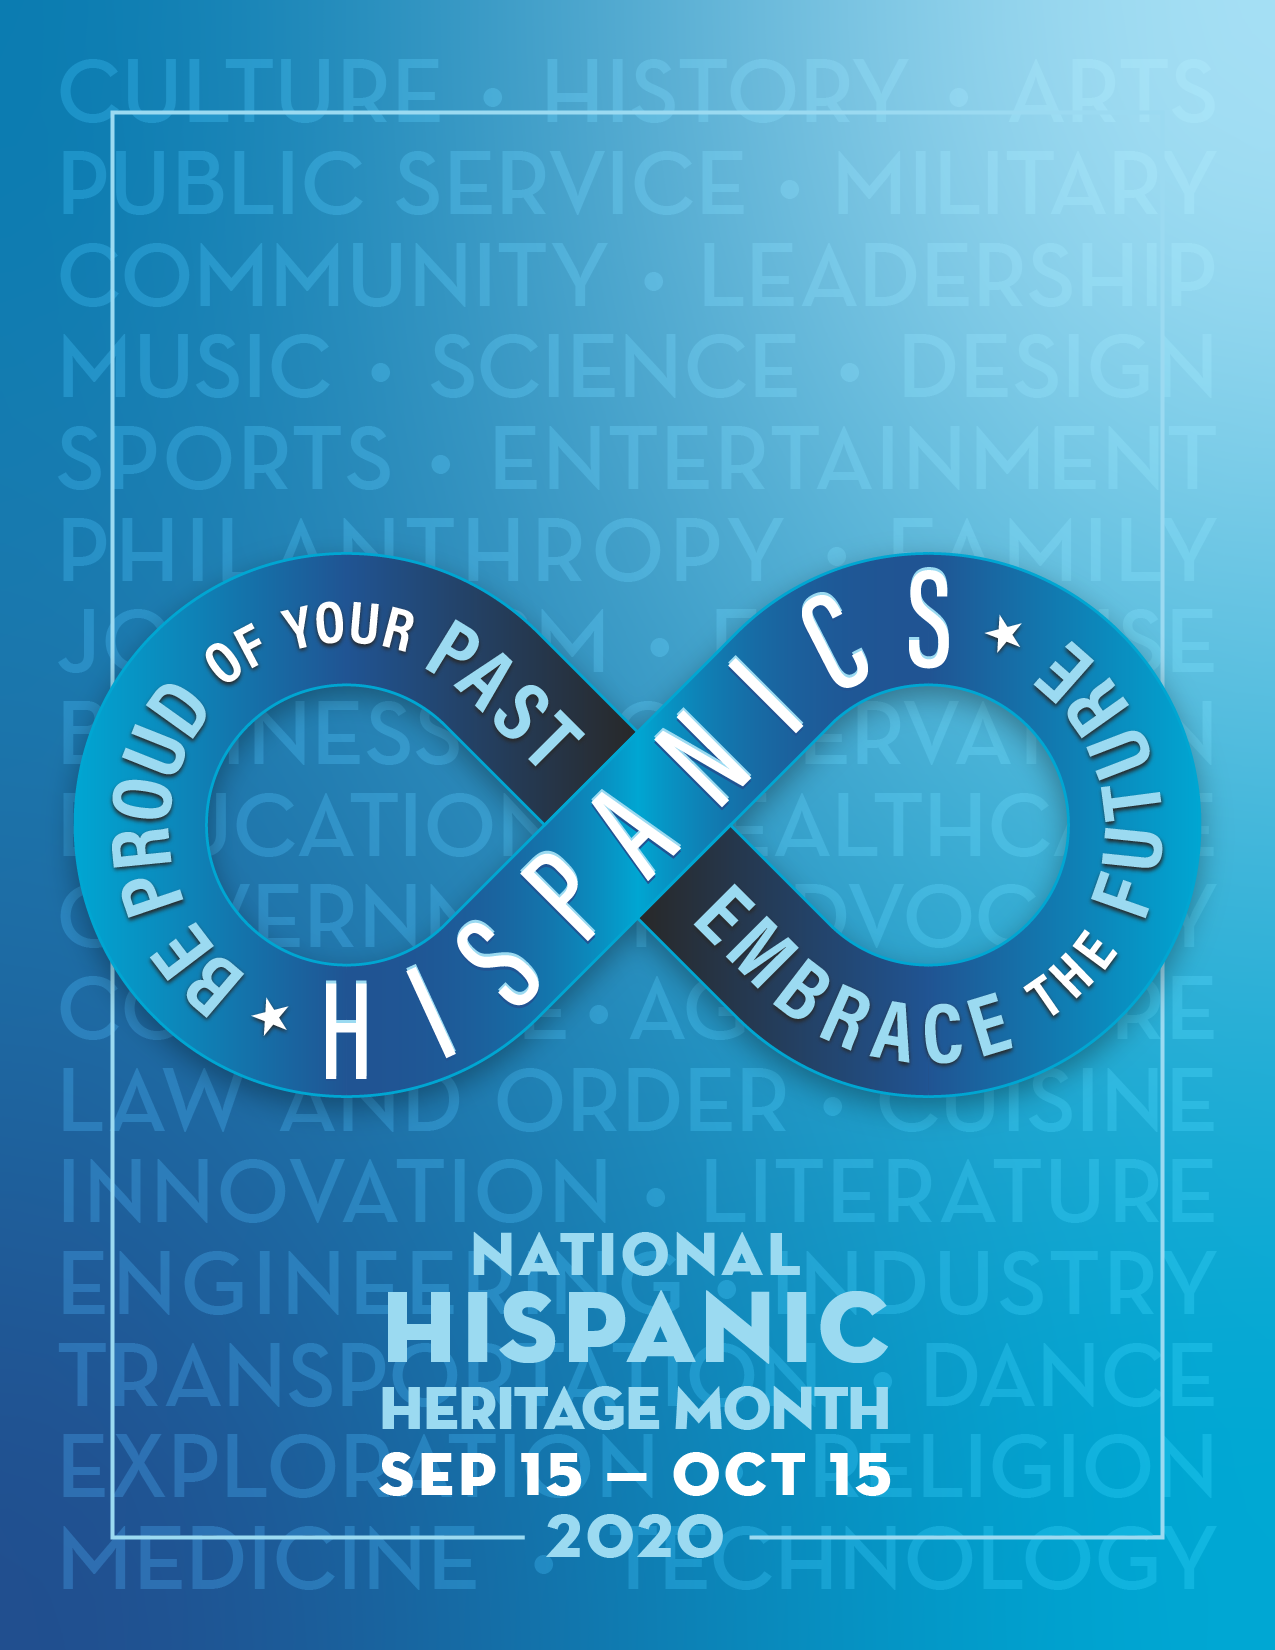 CCPL plans special programs for Hispanic Heritage Month